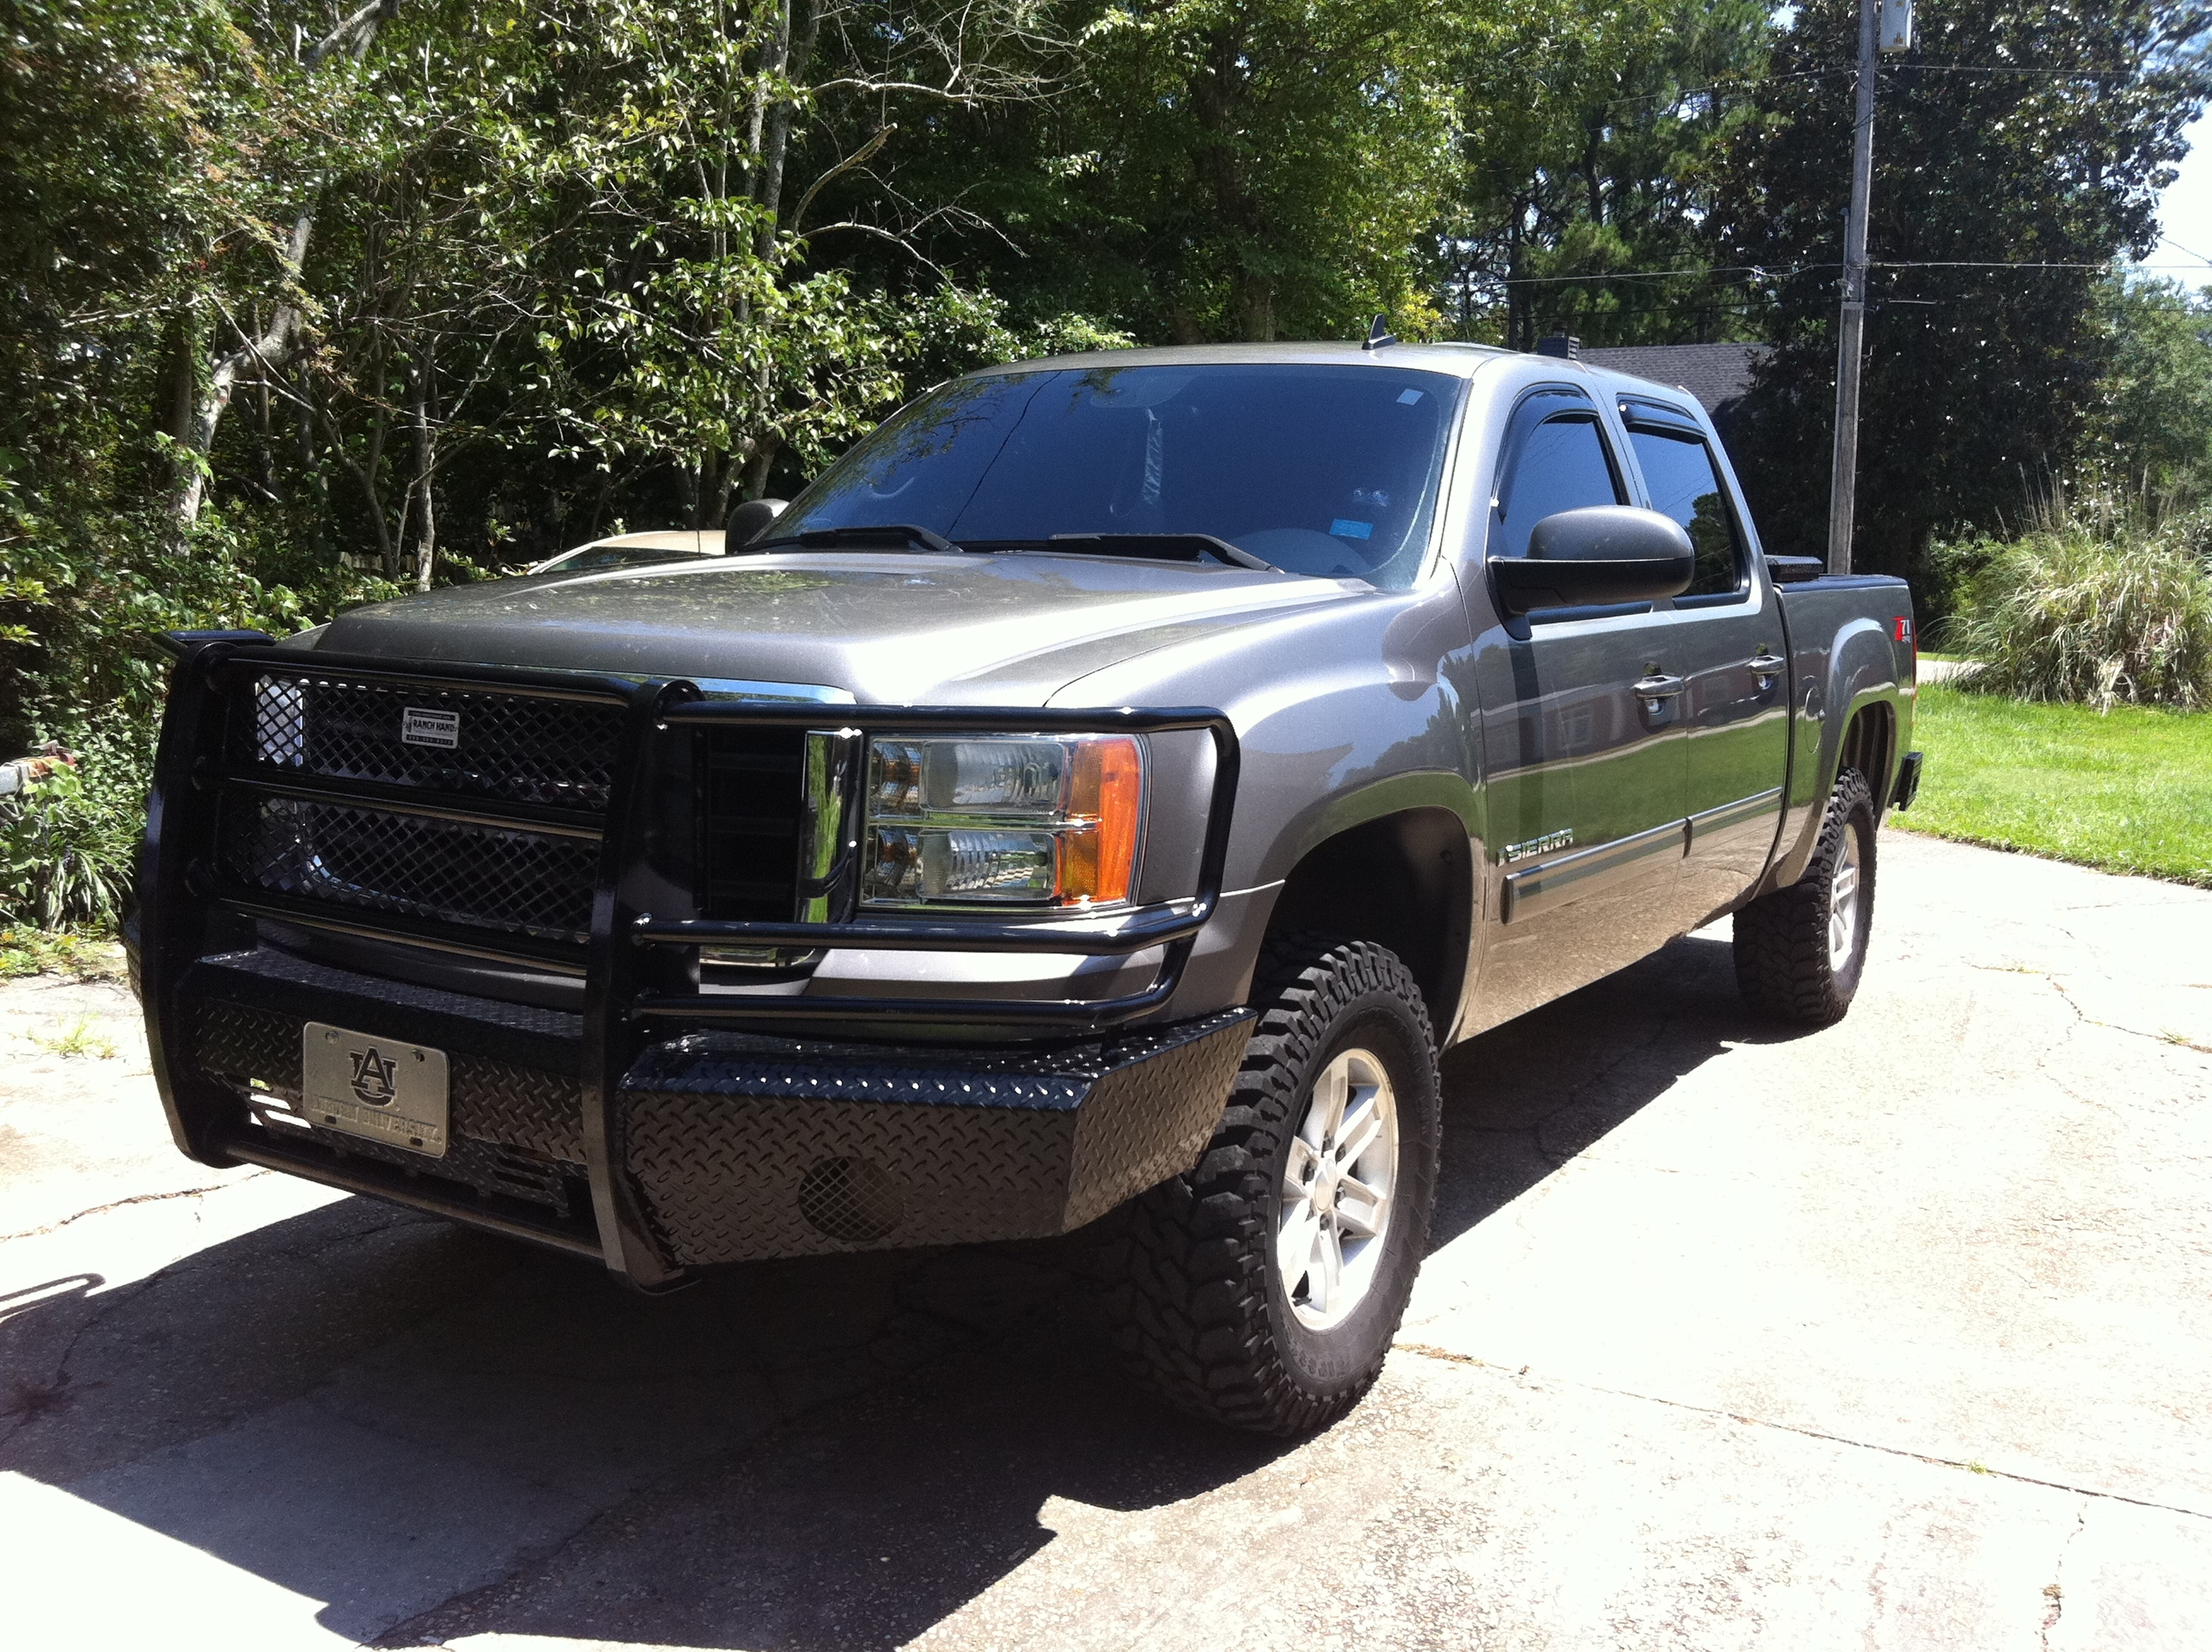 ryanc2 2007 gmc sierra 1500 crew cabslt pickup 4d 5 3 4 ft specs photos modification info at. Black Bedroom Furniture Sets. Home Design Ideas